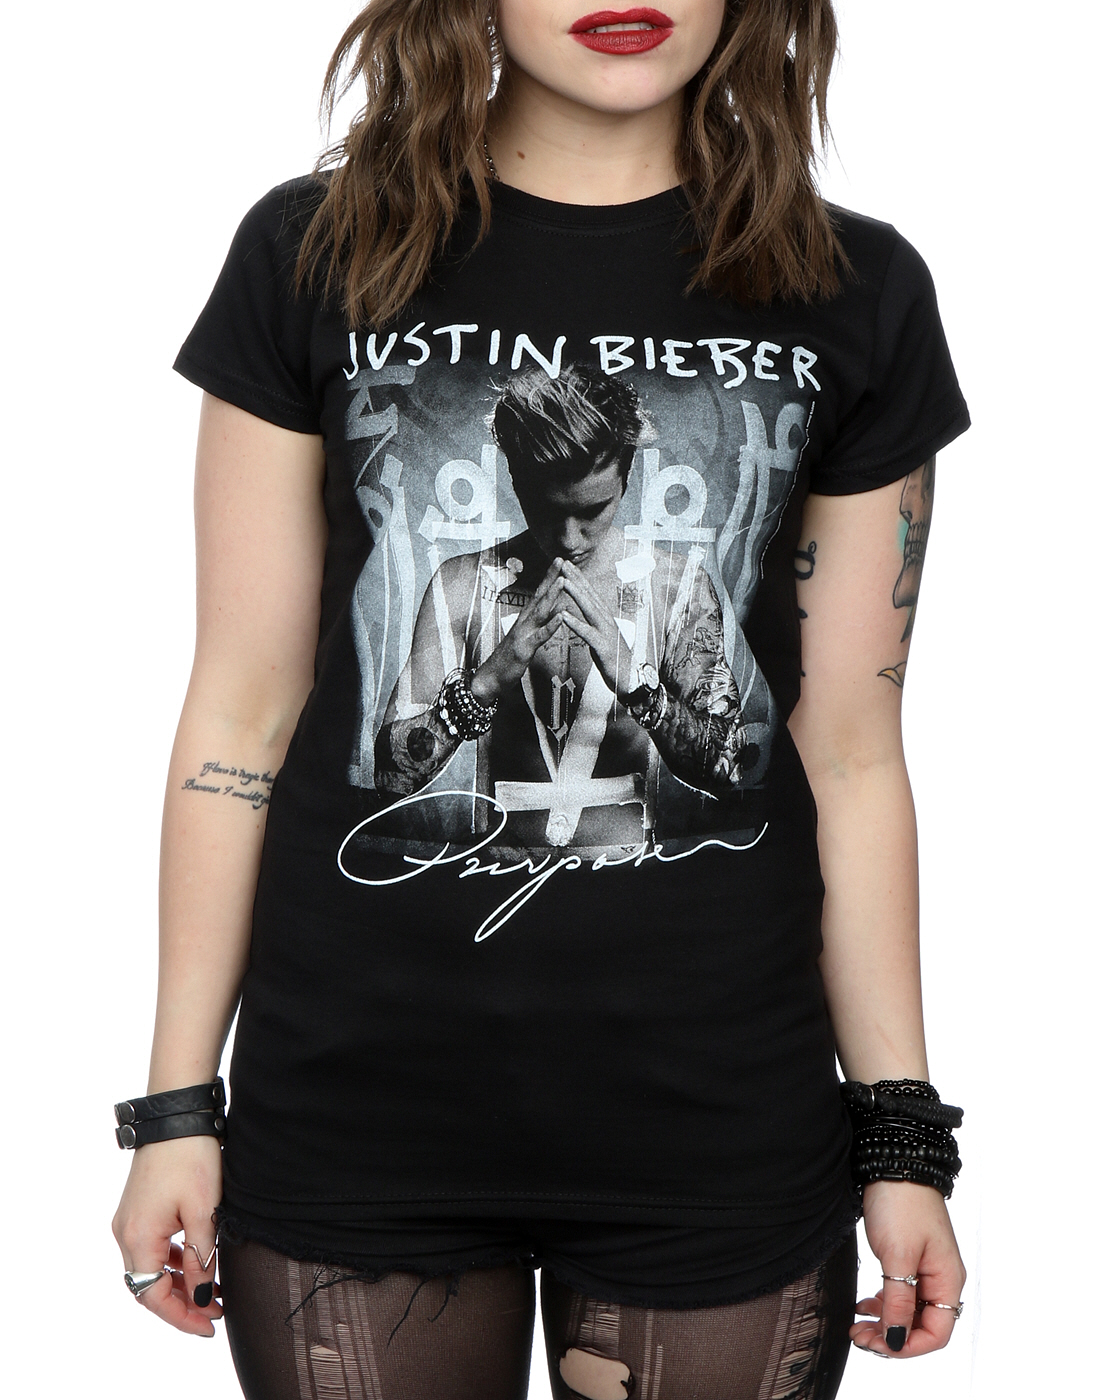 justin bieber women 39 s purpose album cover t shirt ebay. Black Bedroom Furniture Sets. Home Design Ideas